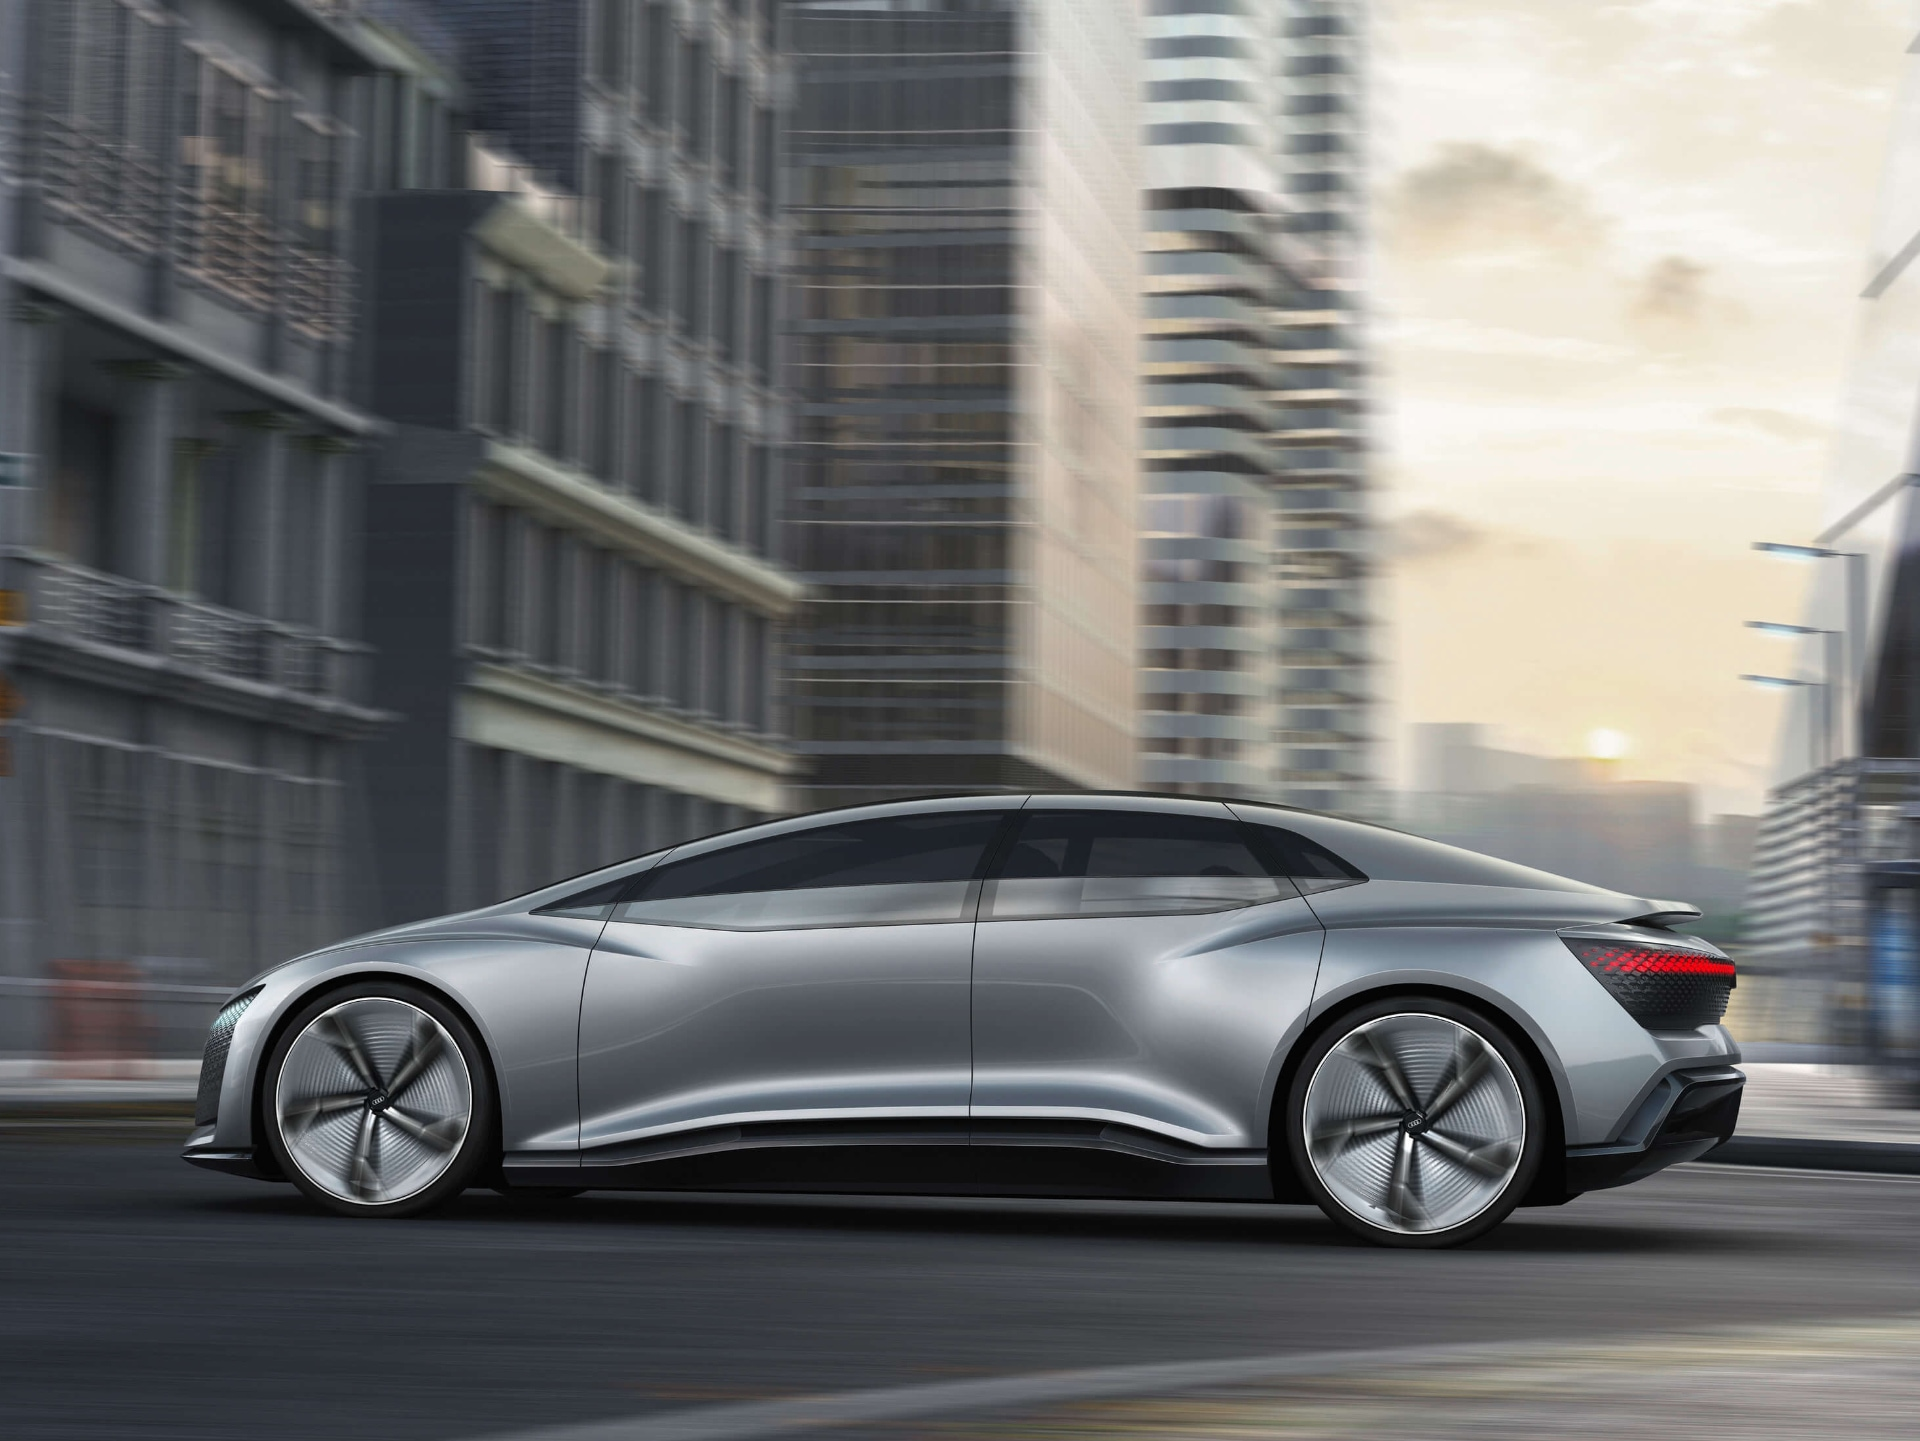 The mobility of the future of Audi: the Audi Aicon. Autonomously driving cars such as the concept car can contribute to the reduction of air pollution, because they help to regulate the traffic flow.